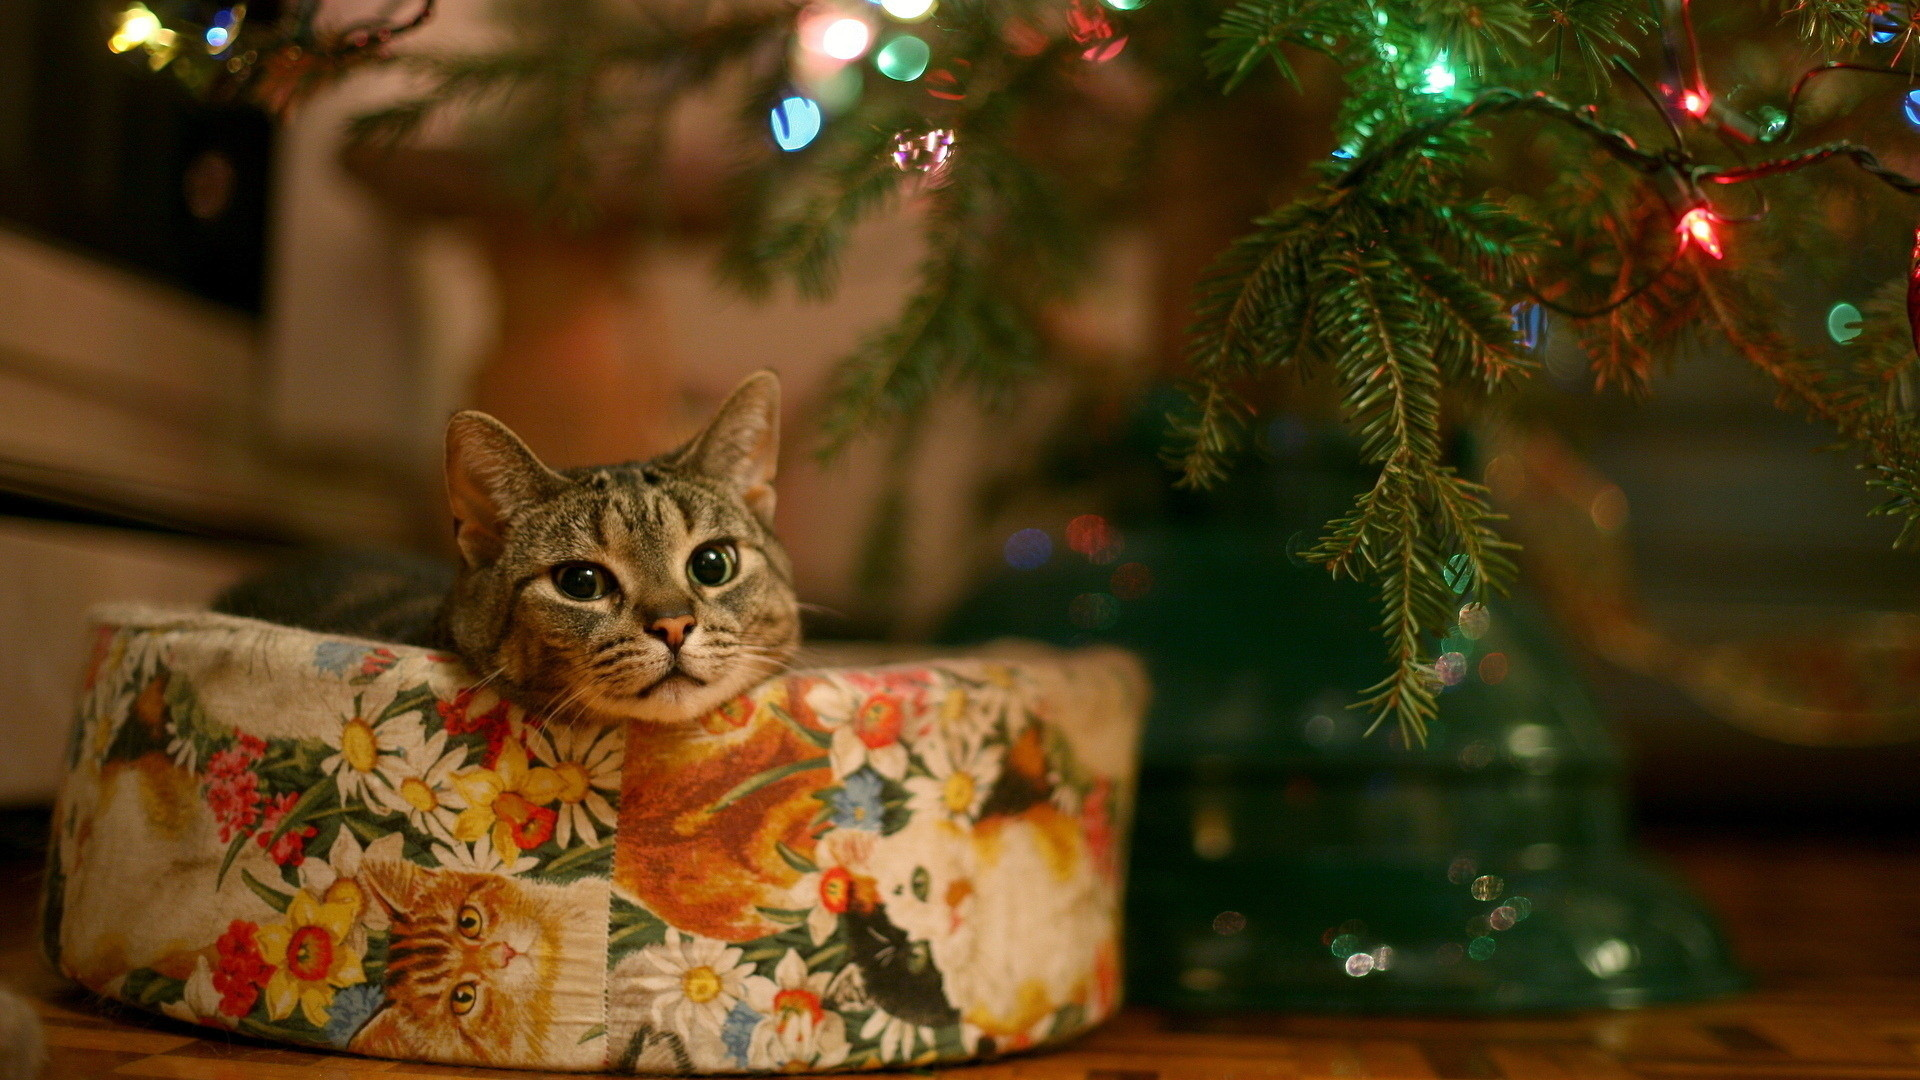 1920x1080 Cute Christmas Cat Full HD 1080p Wallpaper 1920A 1080